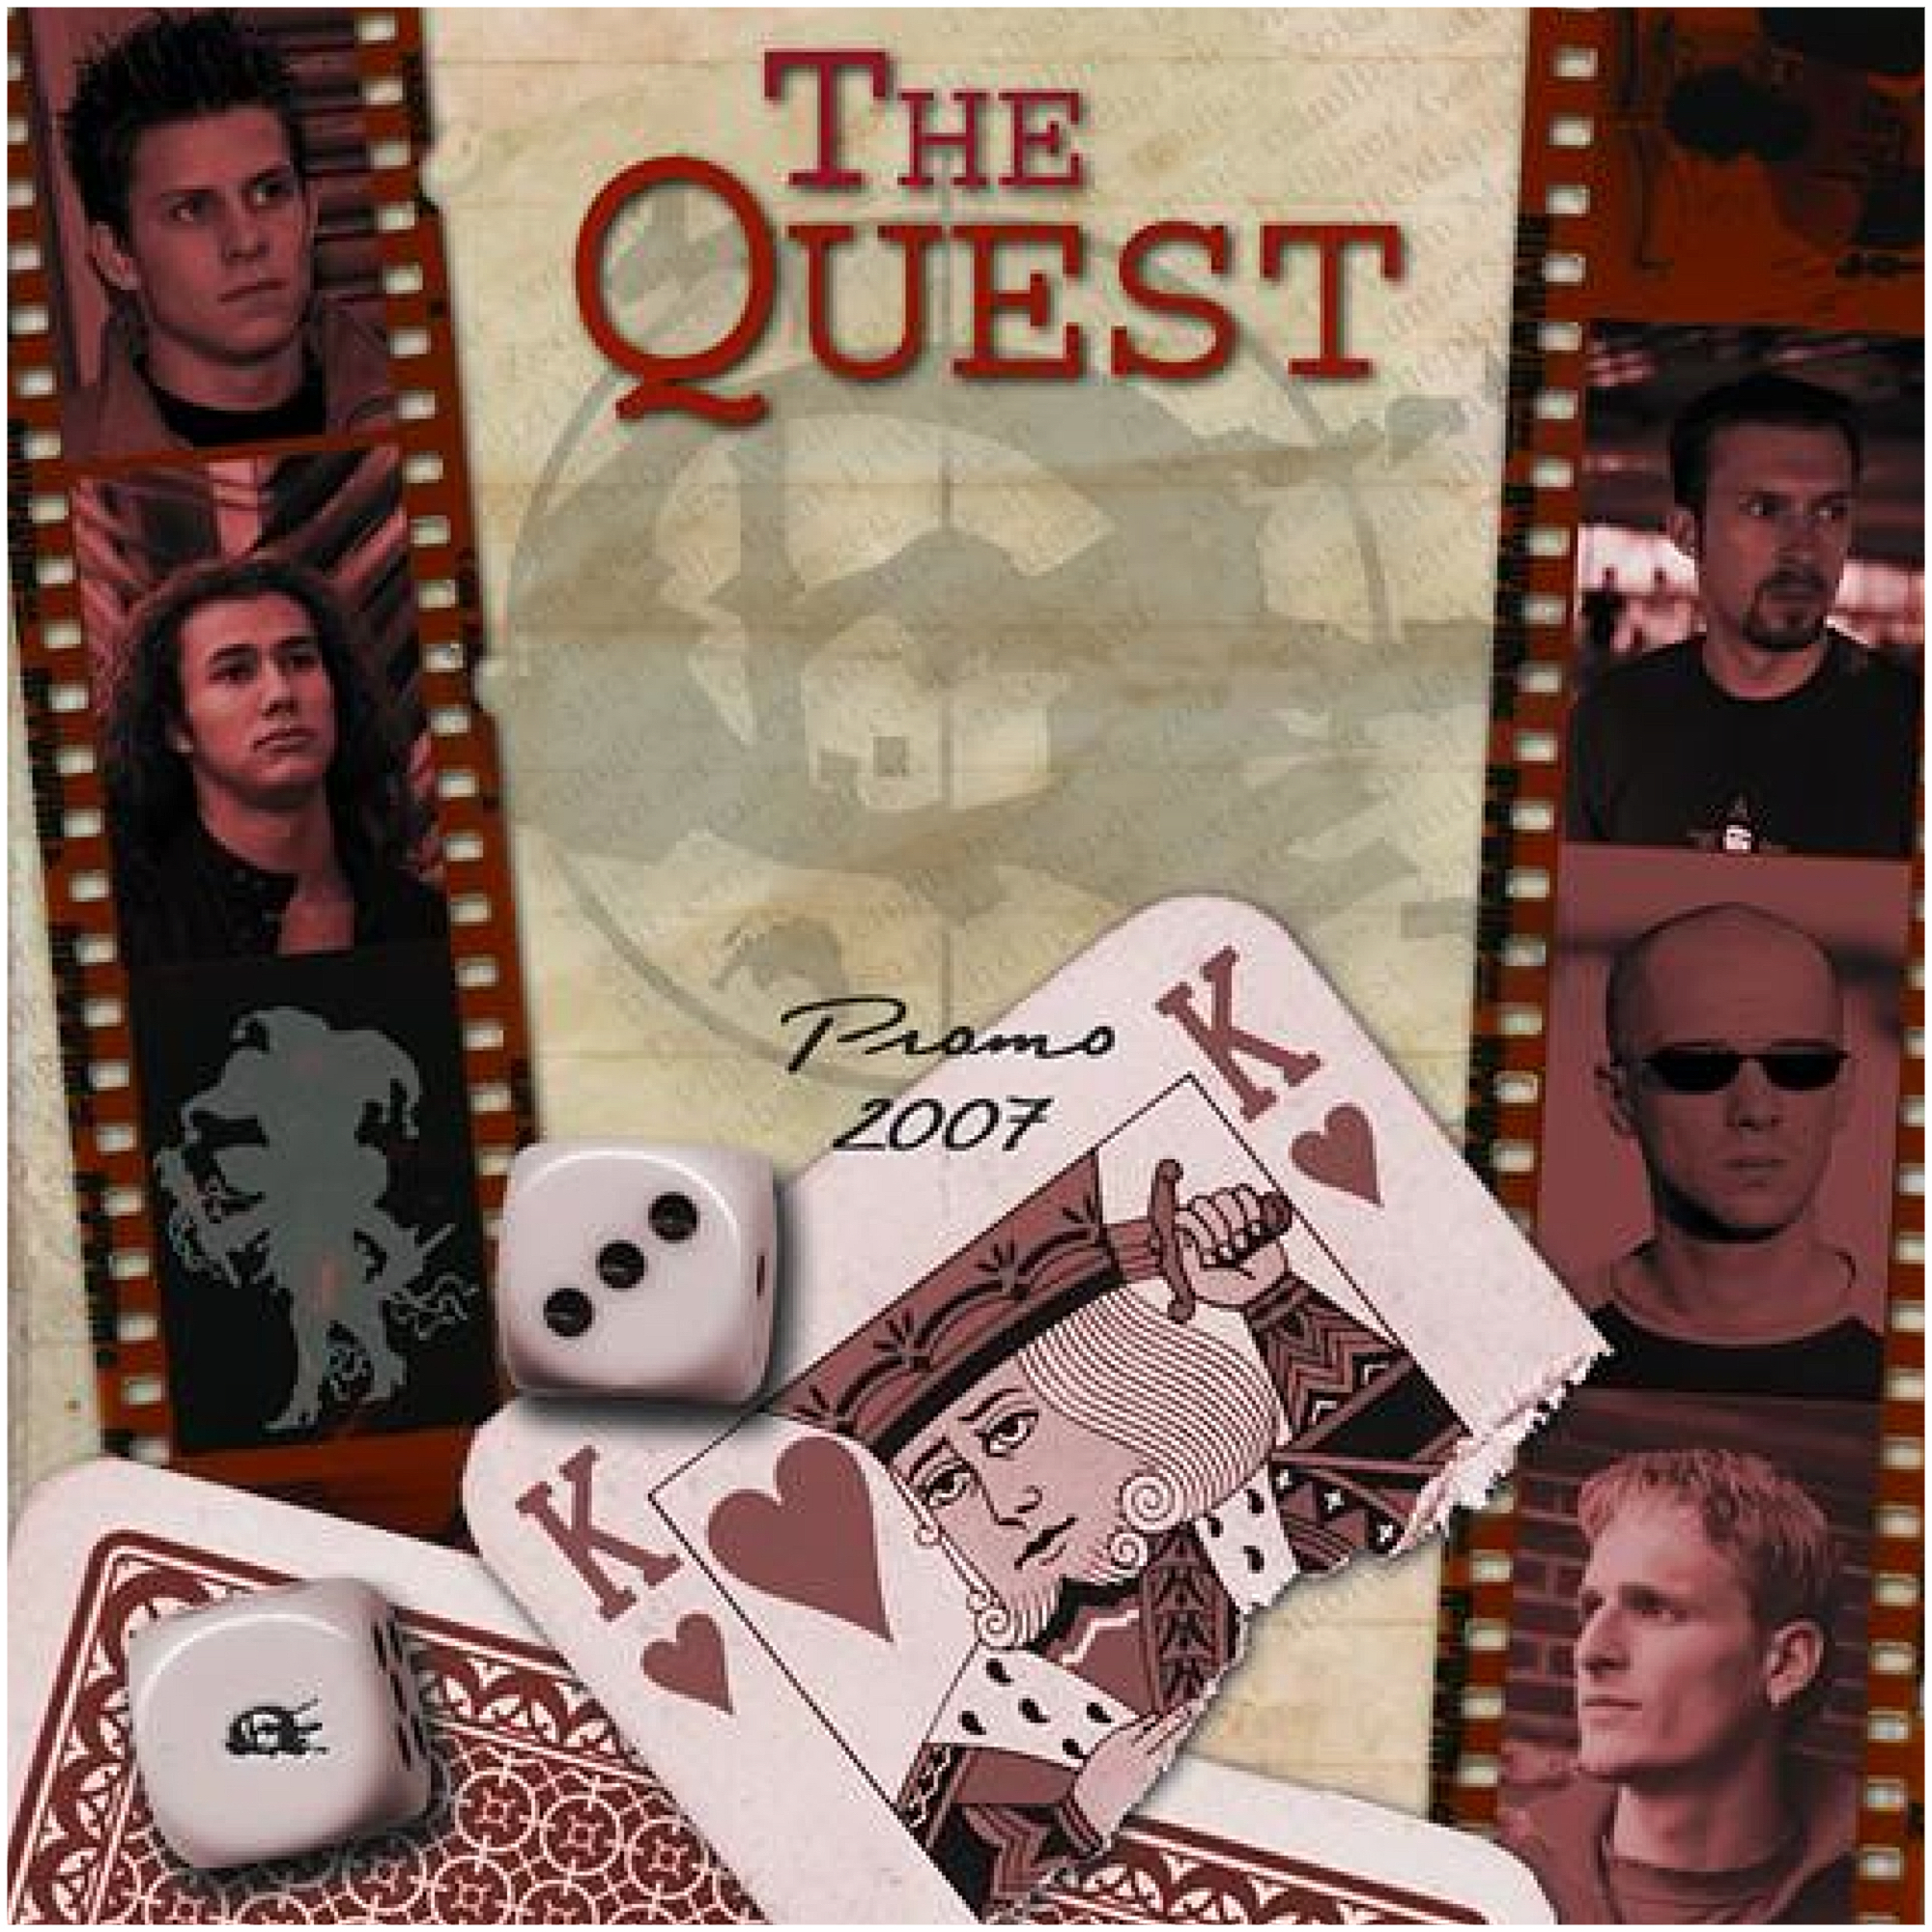 The Quest - Promo 2007